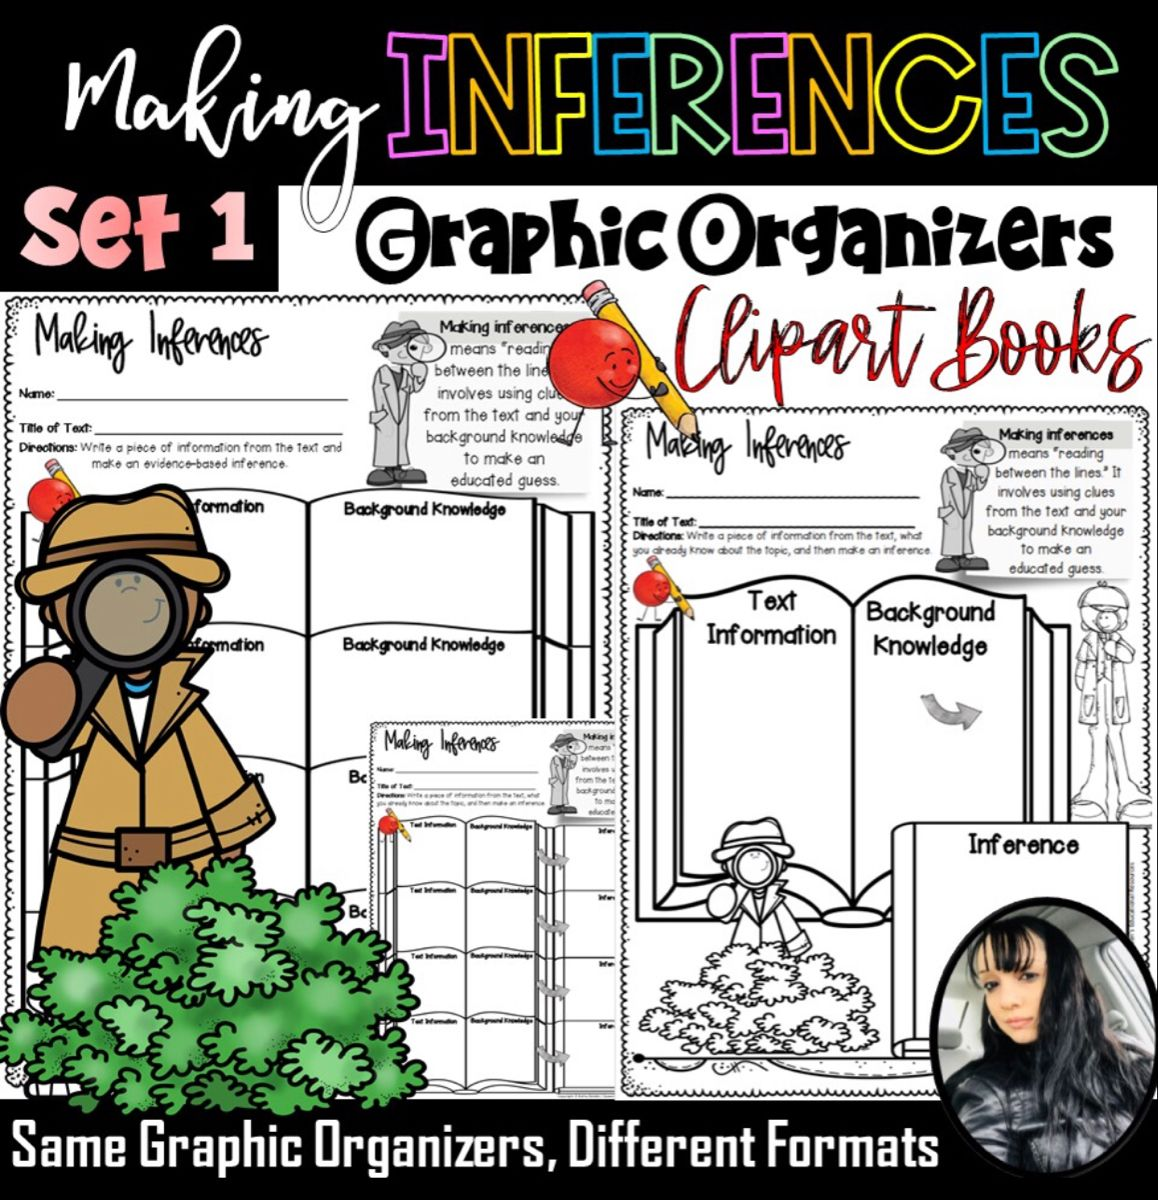 Making Inferences Graphic Organizers